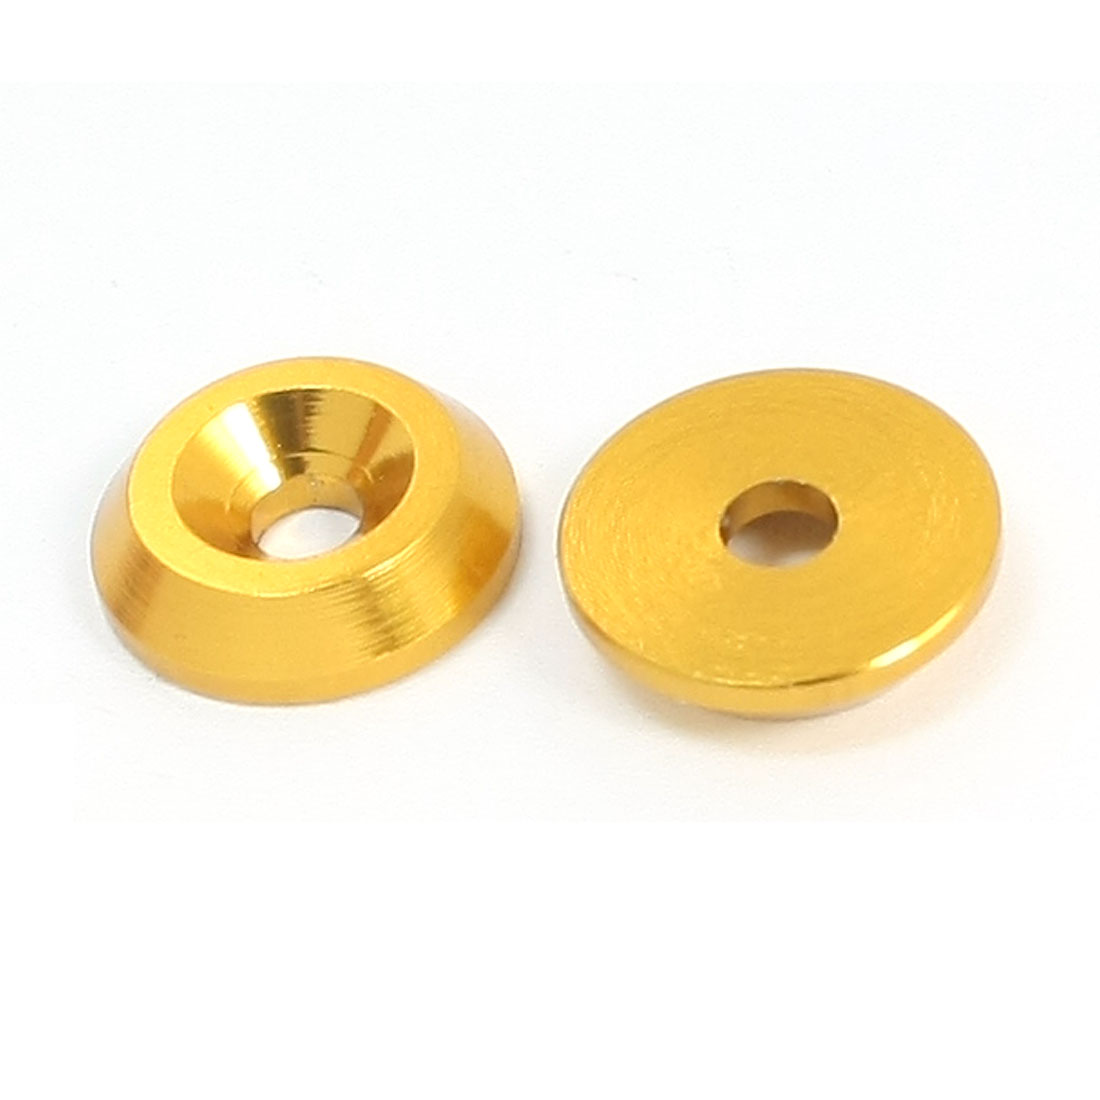 2Pcs 12mm Outer Dia Gold Tone Aluminium Alloy for 3mm Shaft RC Spacer